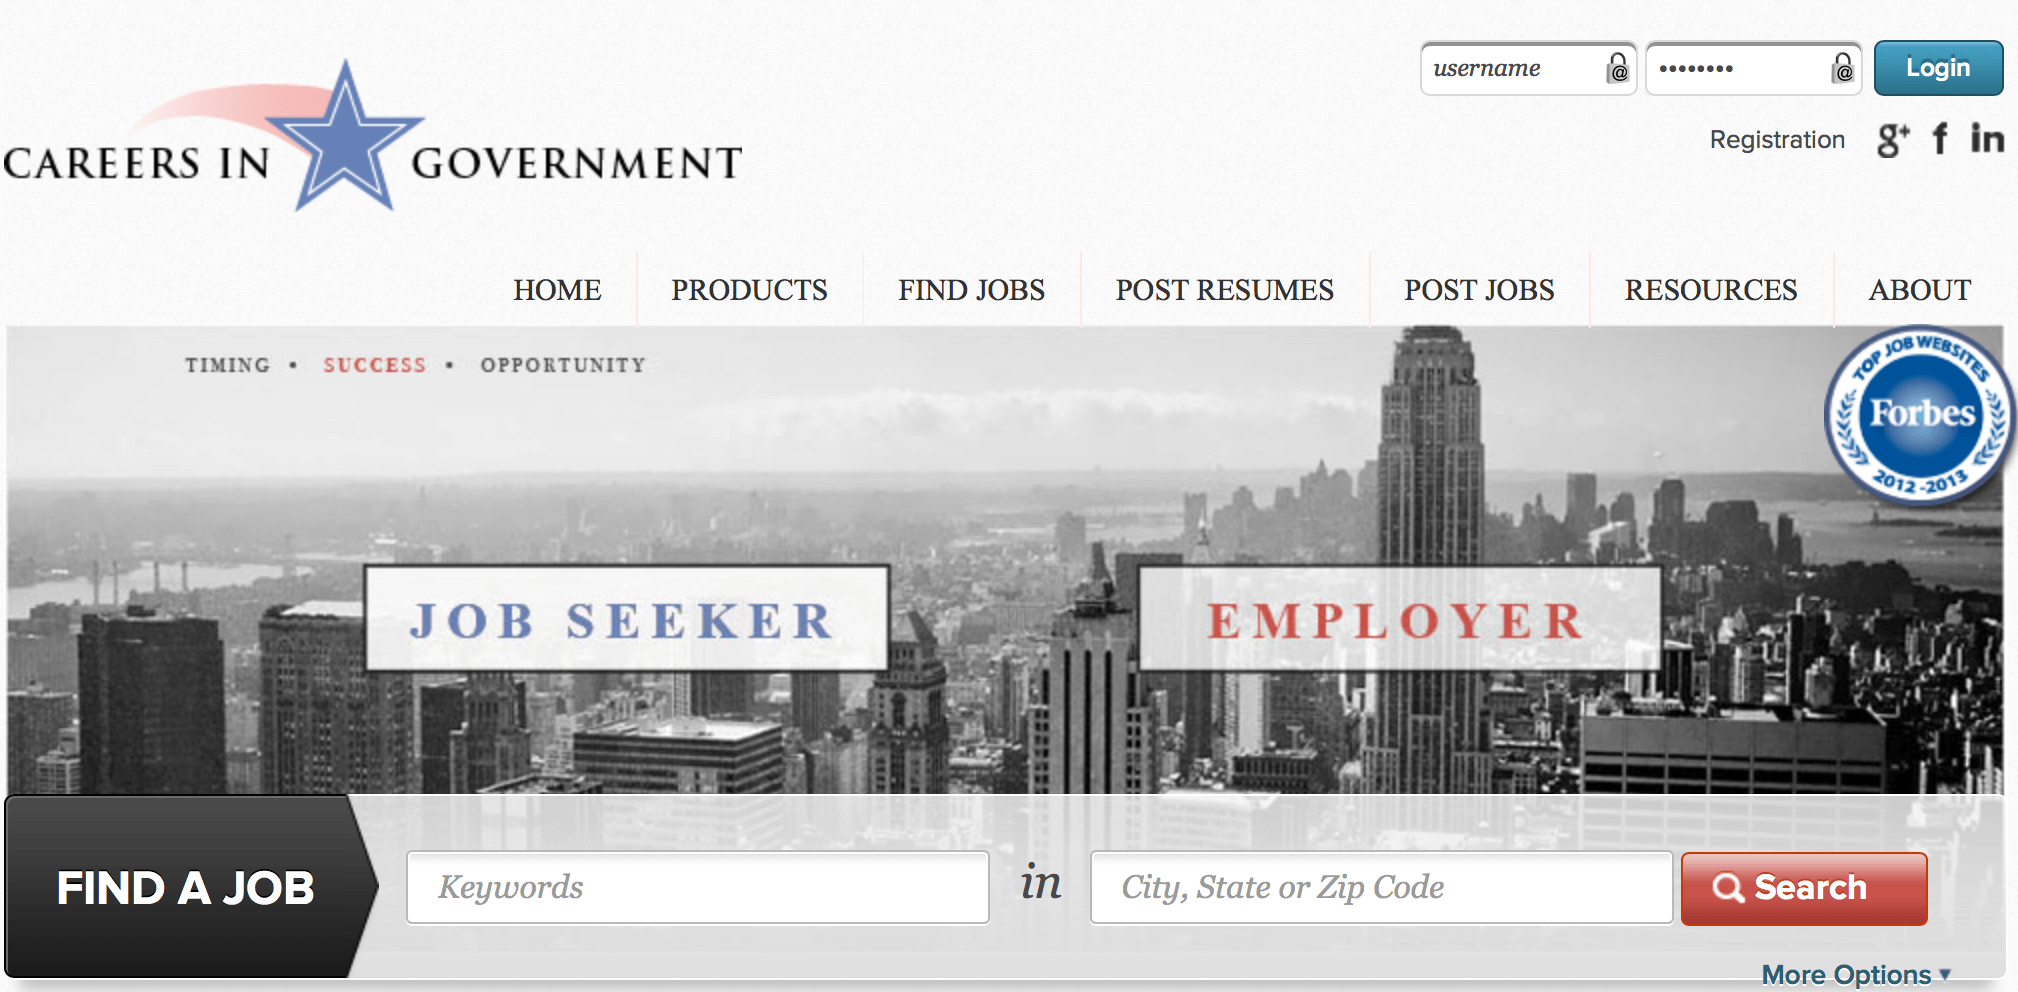 Customized Employer Profile Pages Generate Traffic and Brand Awareness